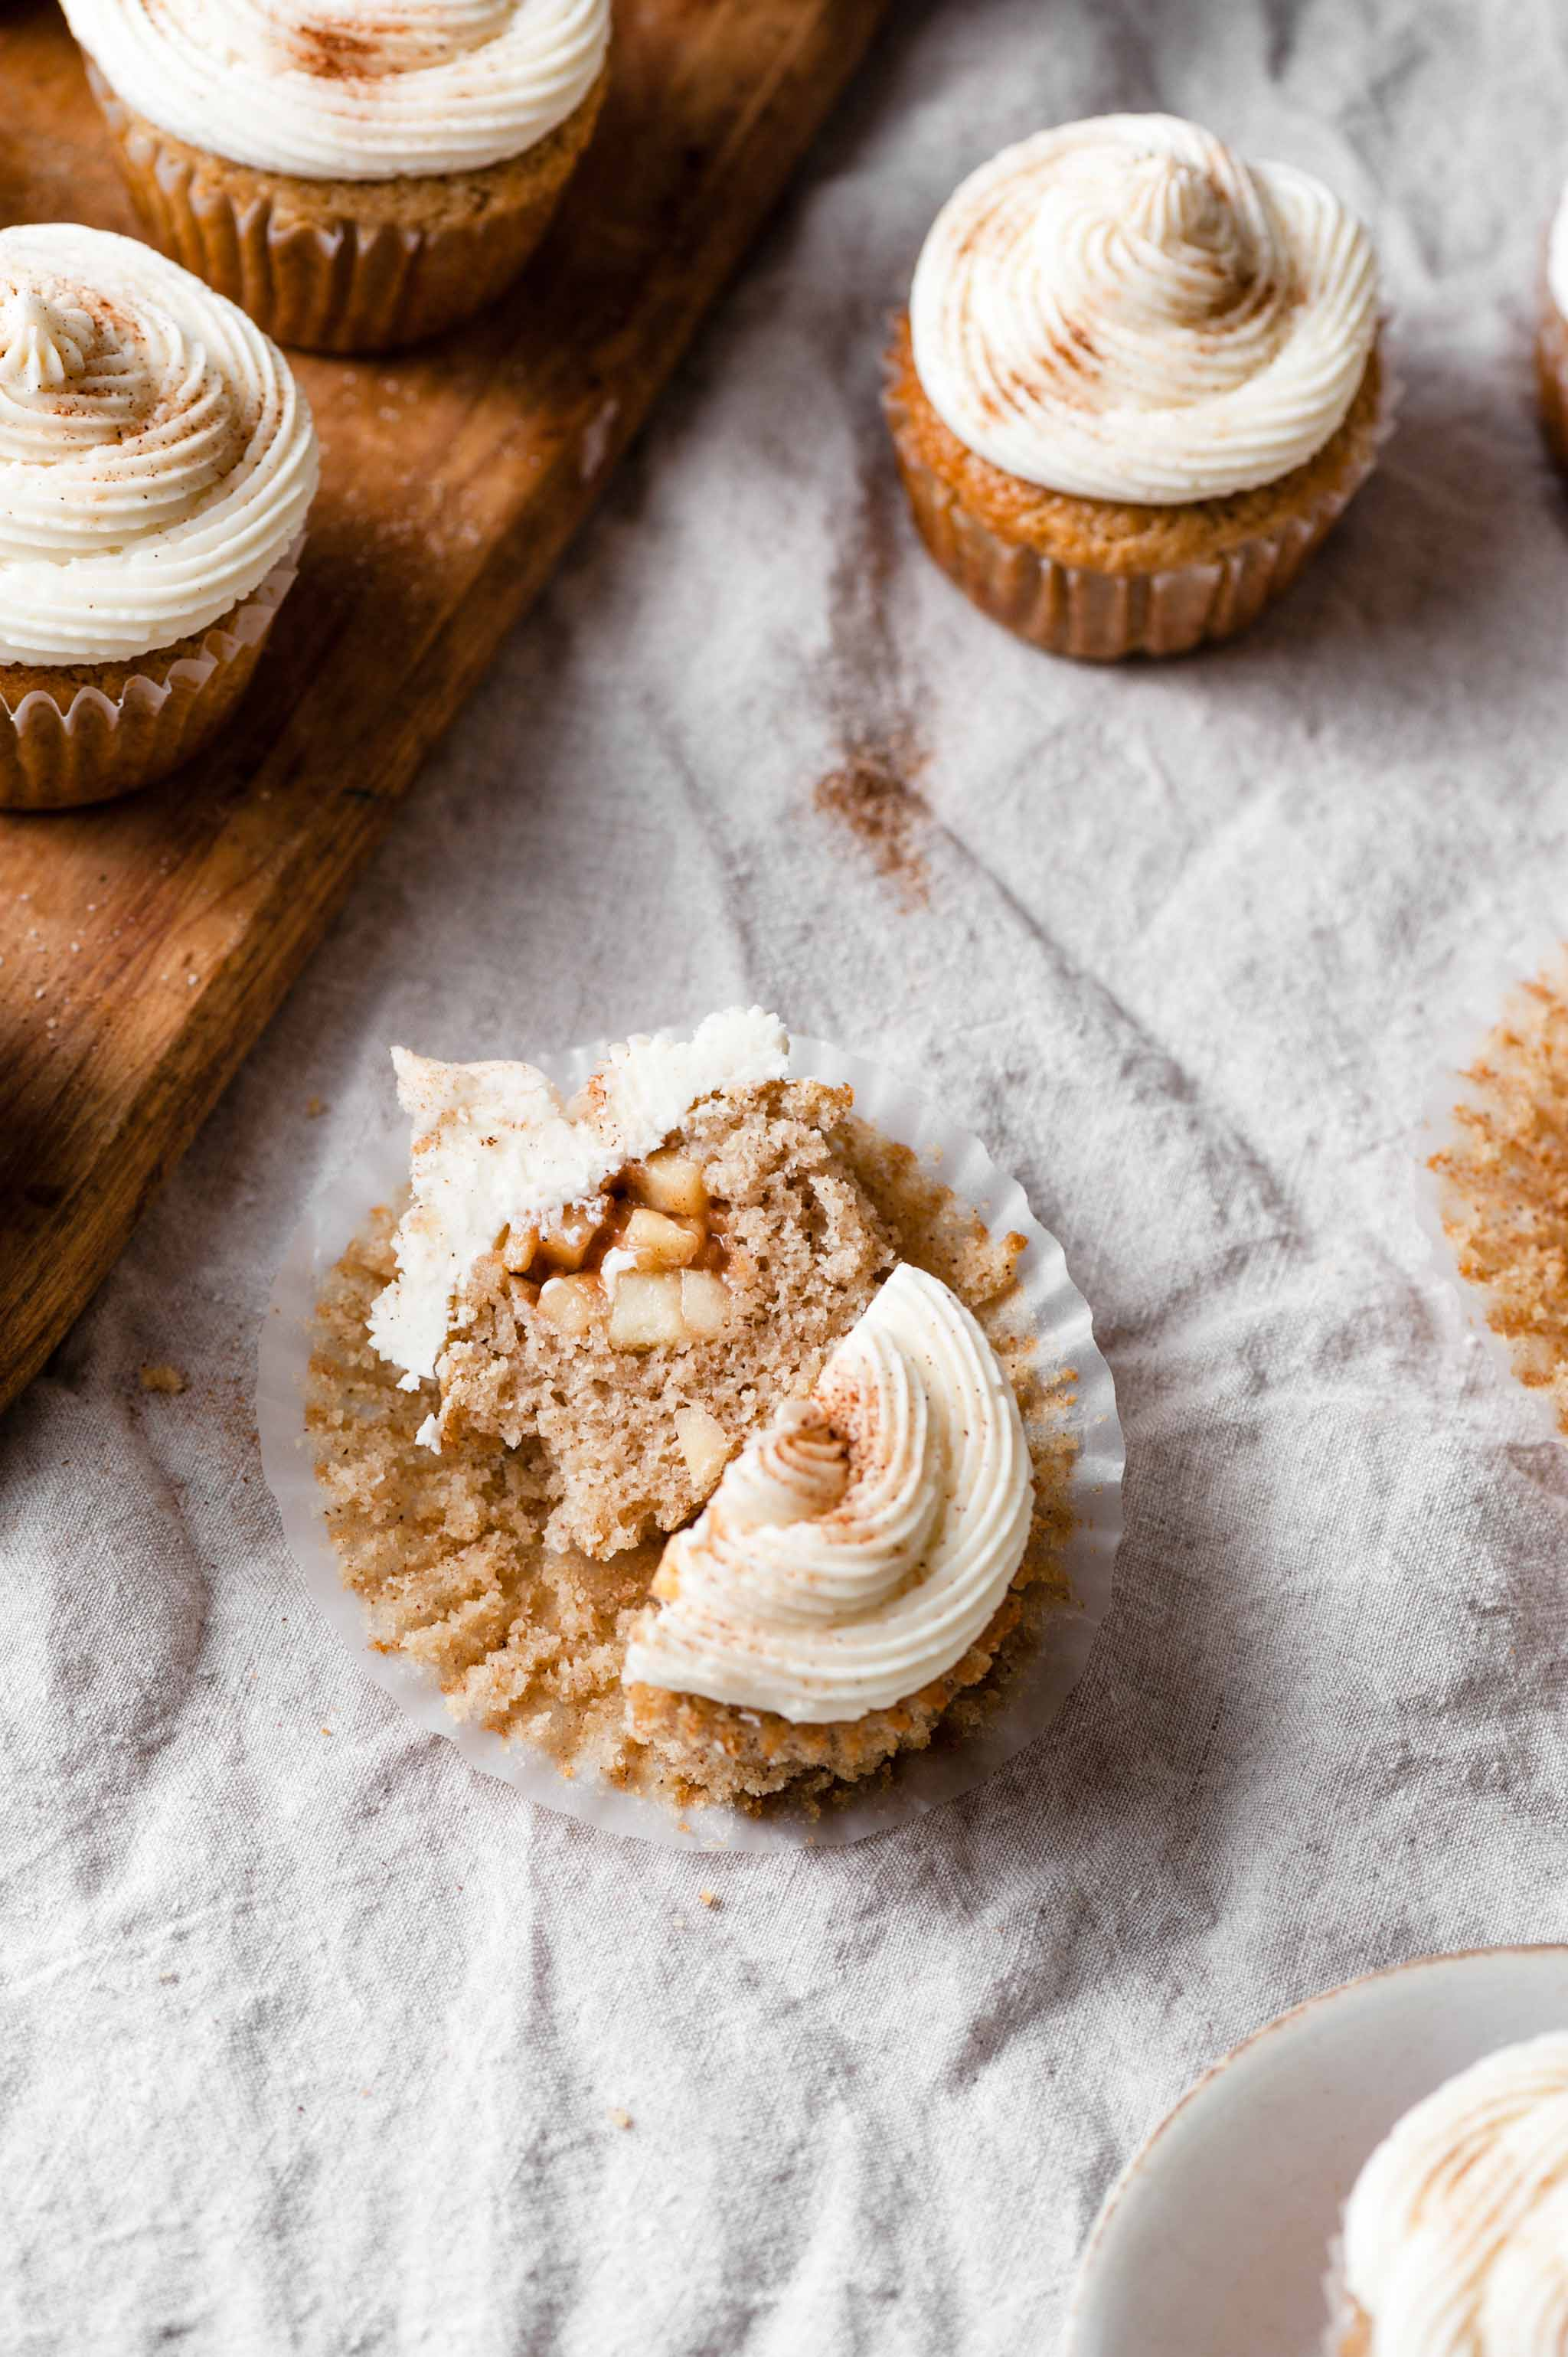 Apple Pie Cupcakes with Apple Pie Filling